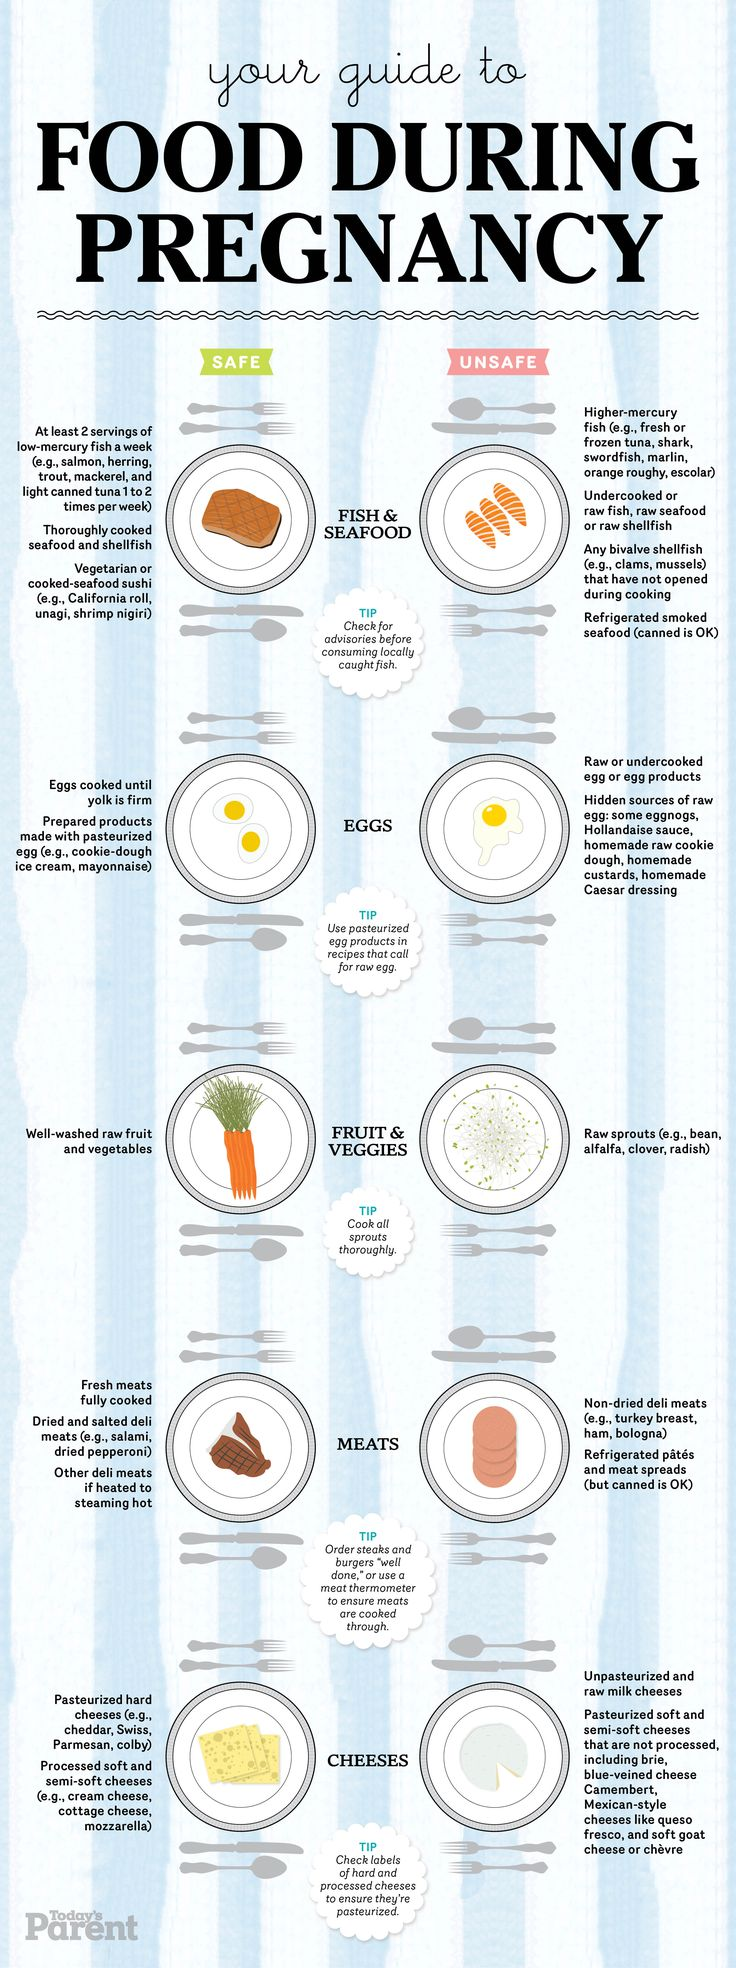 Pregnancy food guide: The truth about what you can eat (+ cheat sheet). #Print out this chart and post it to your fridge!